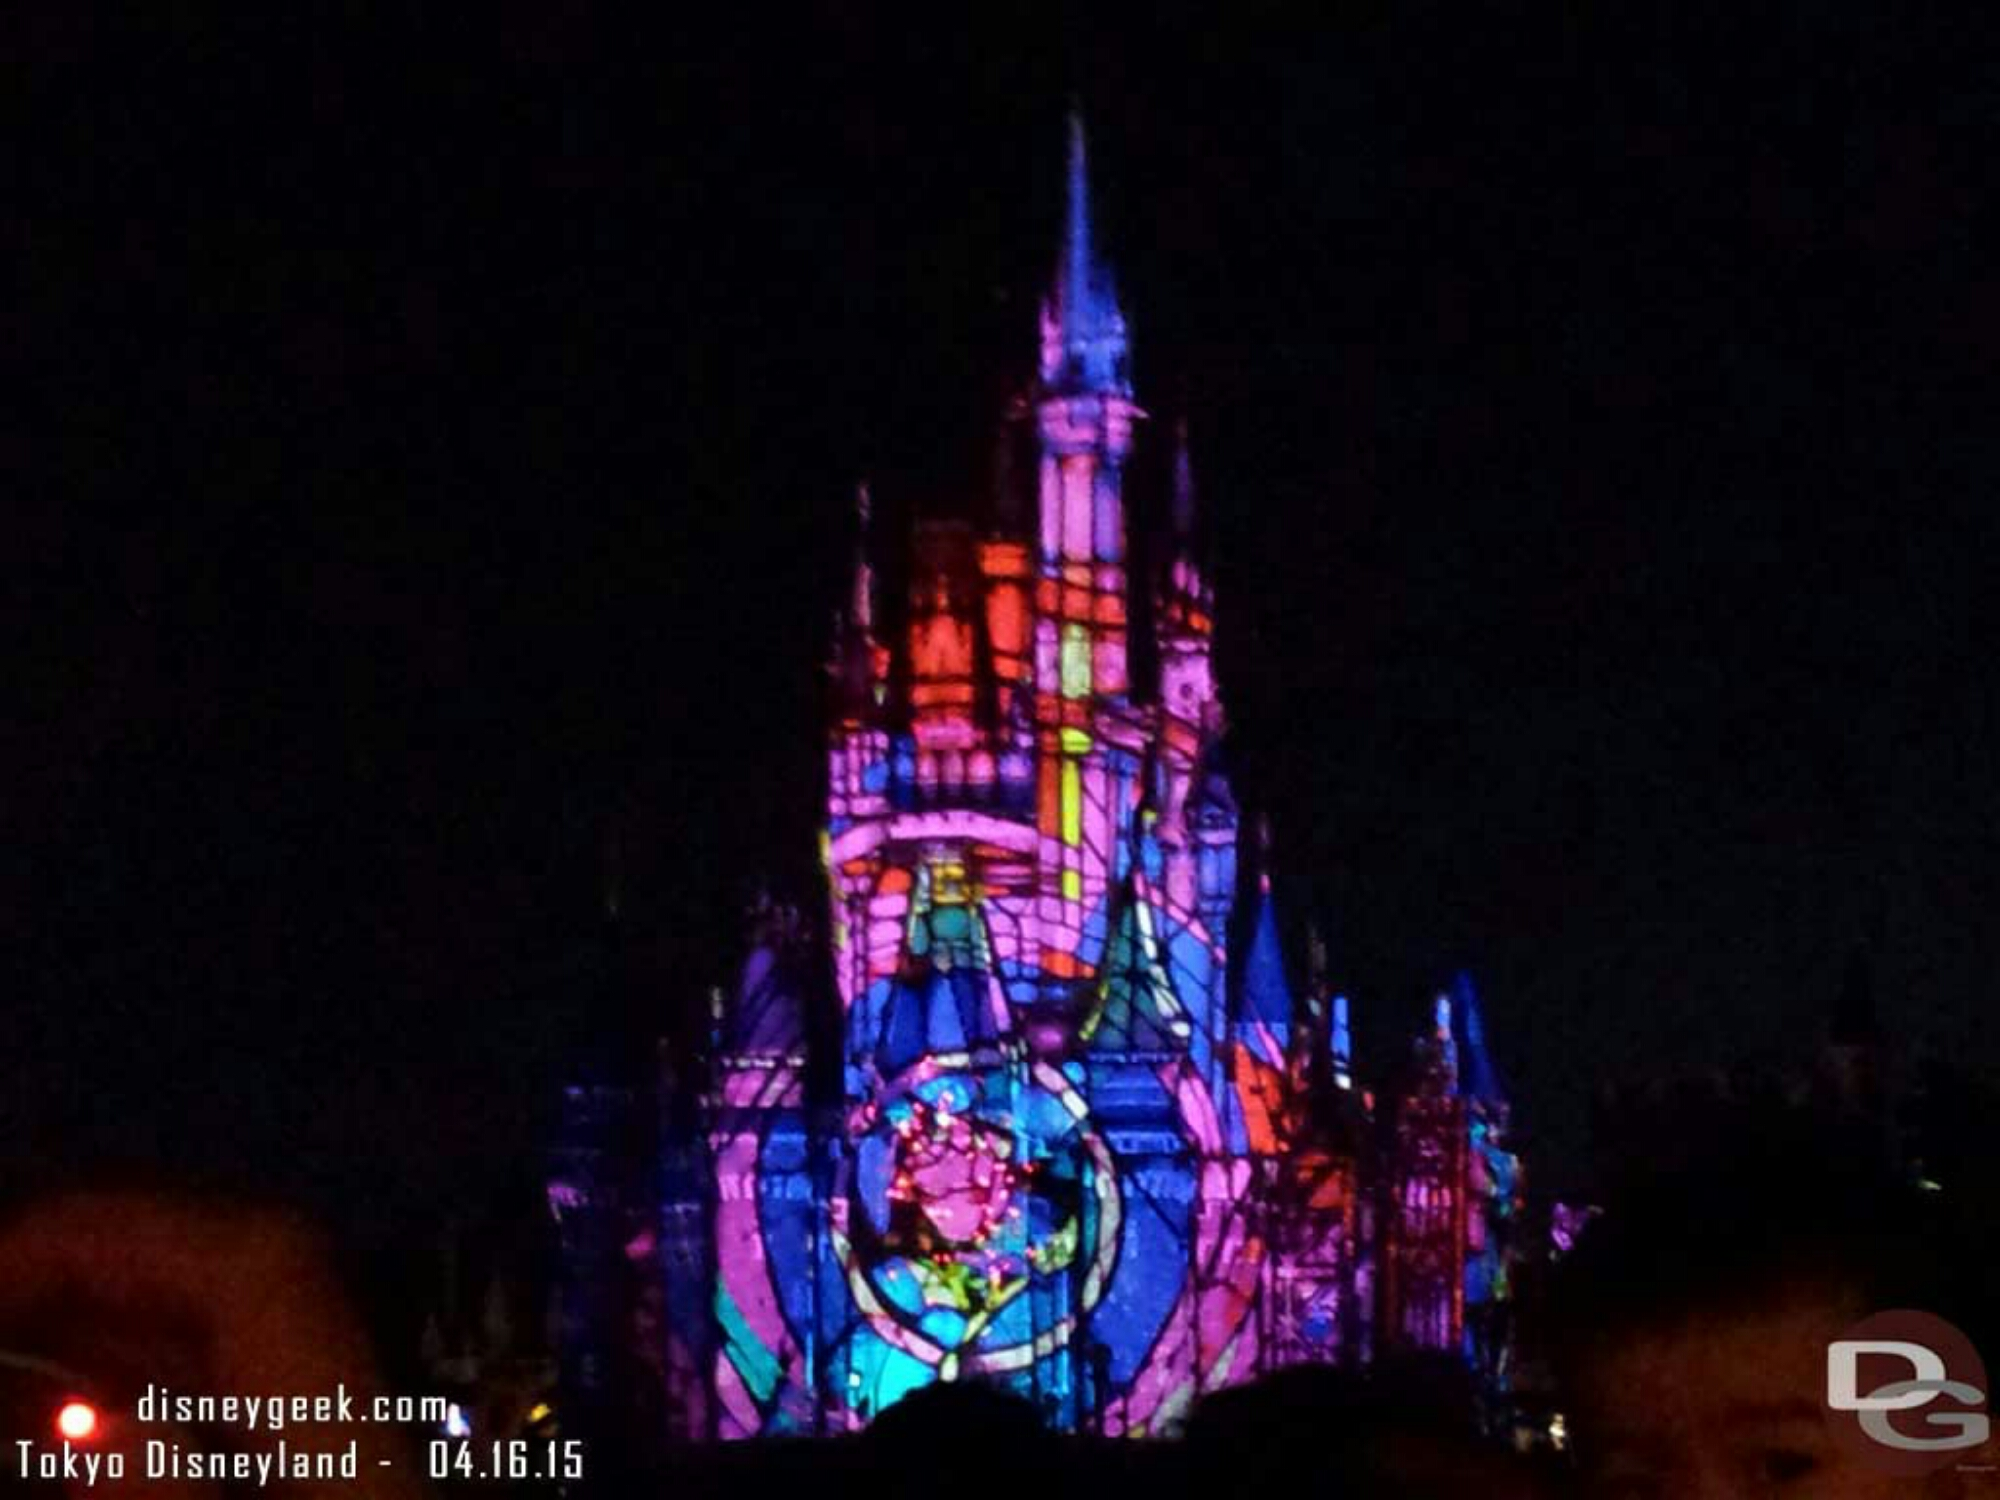 Closed out my evening with Once Upon a Time #TokyoDisneyland